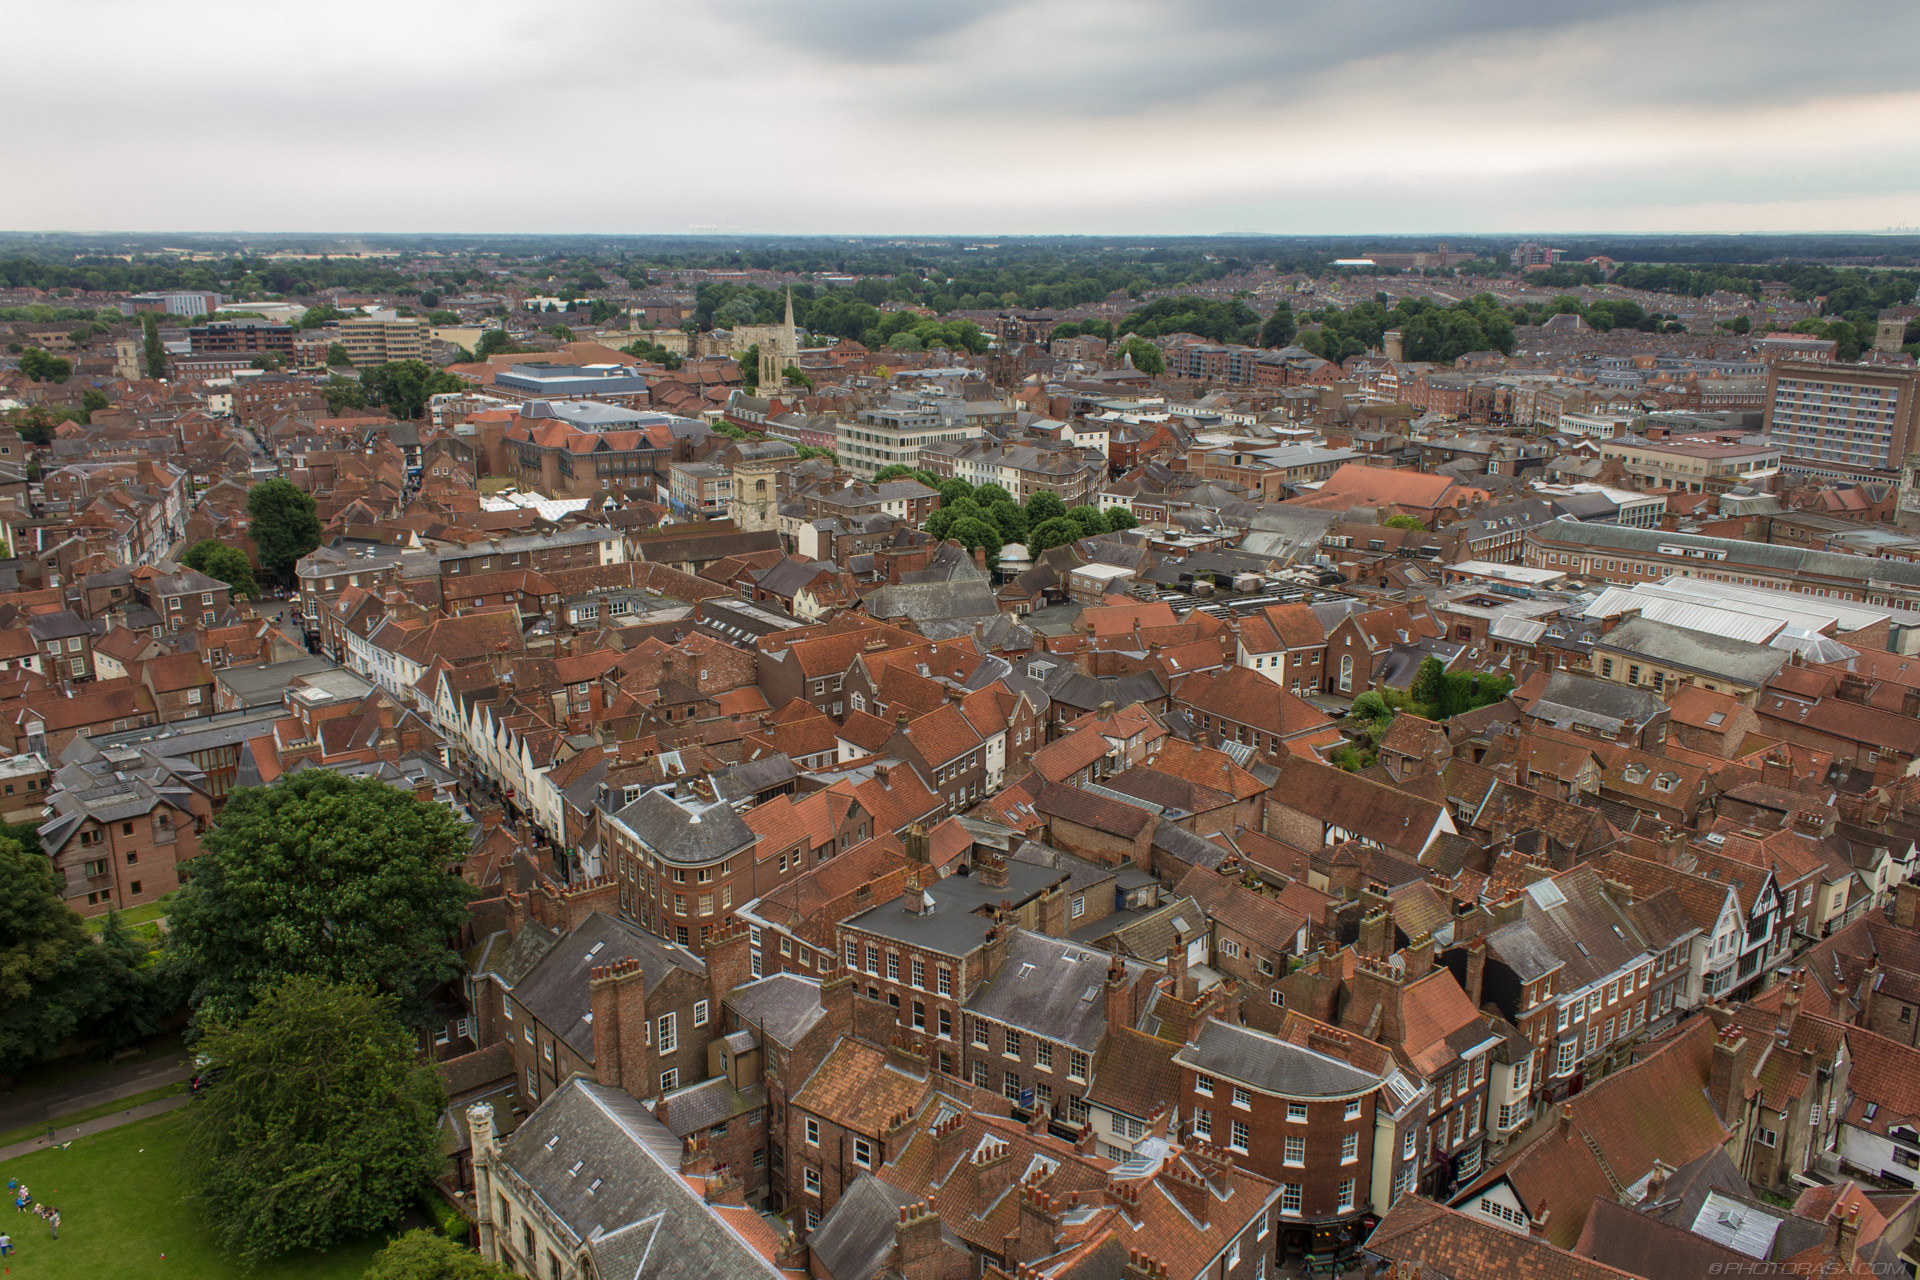 http://photorasa.com/places/yorkminster-cathedral/attachment/view-of-york-form-yorkminster-tower/